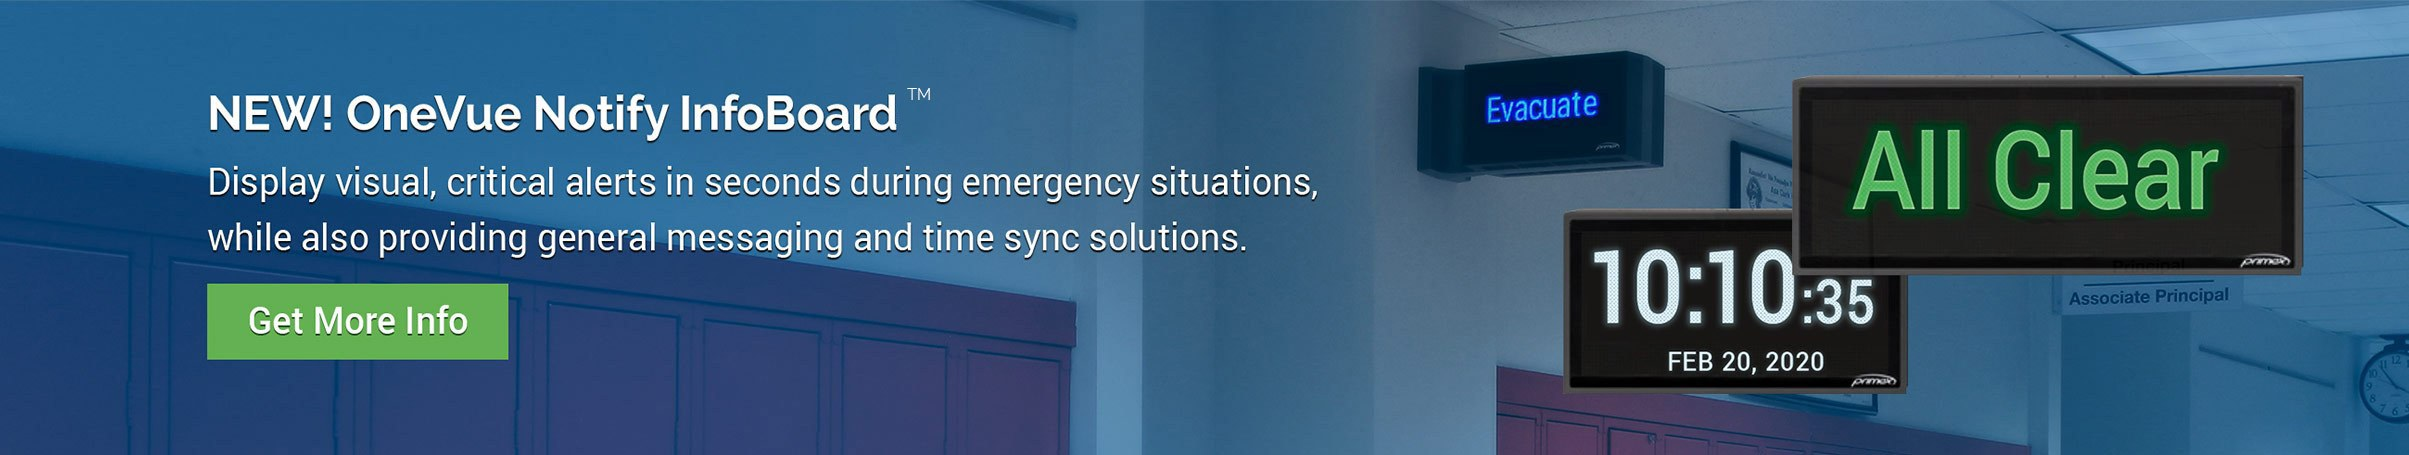 OneVue Notify InfoBoards - Display visual, critical alerts in seconds during emergency situations, while also providing general messaging and time sync solutions. – photo of InfoBoards showing Evacuate message and time – Primex